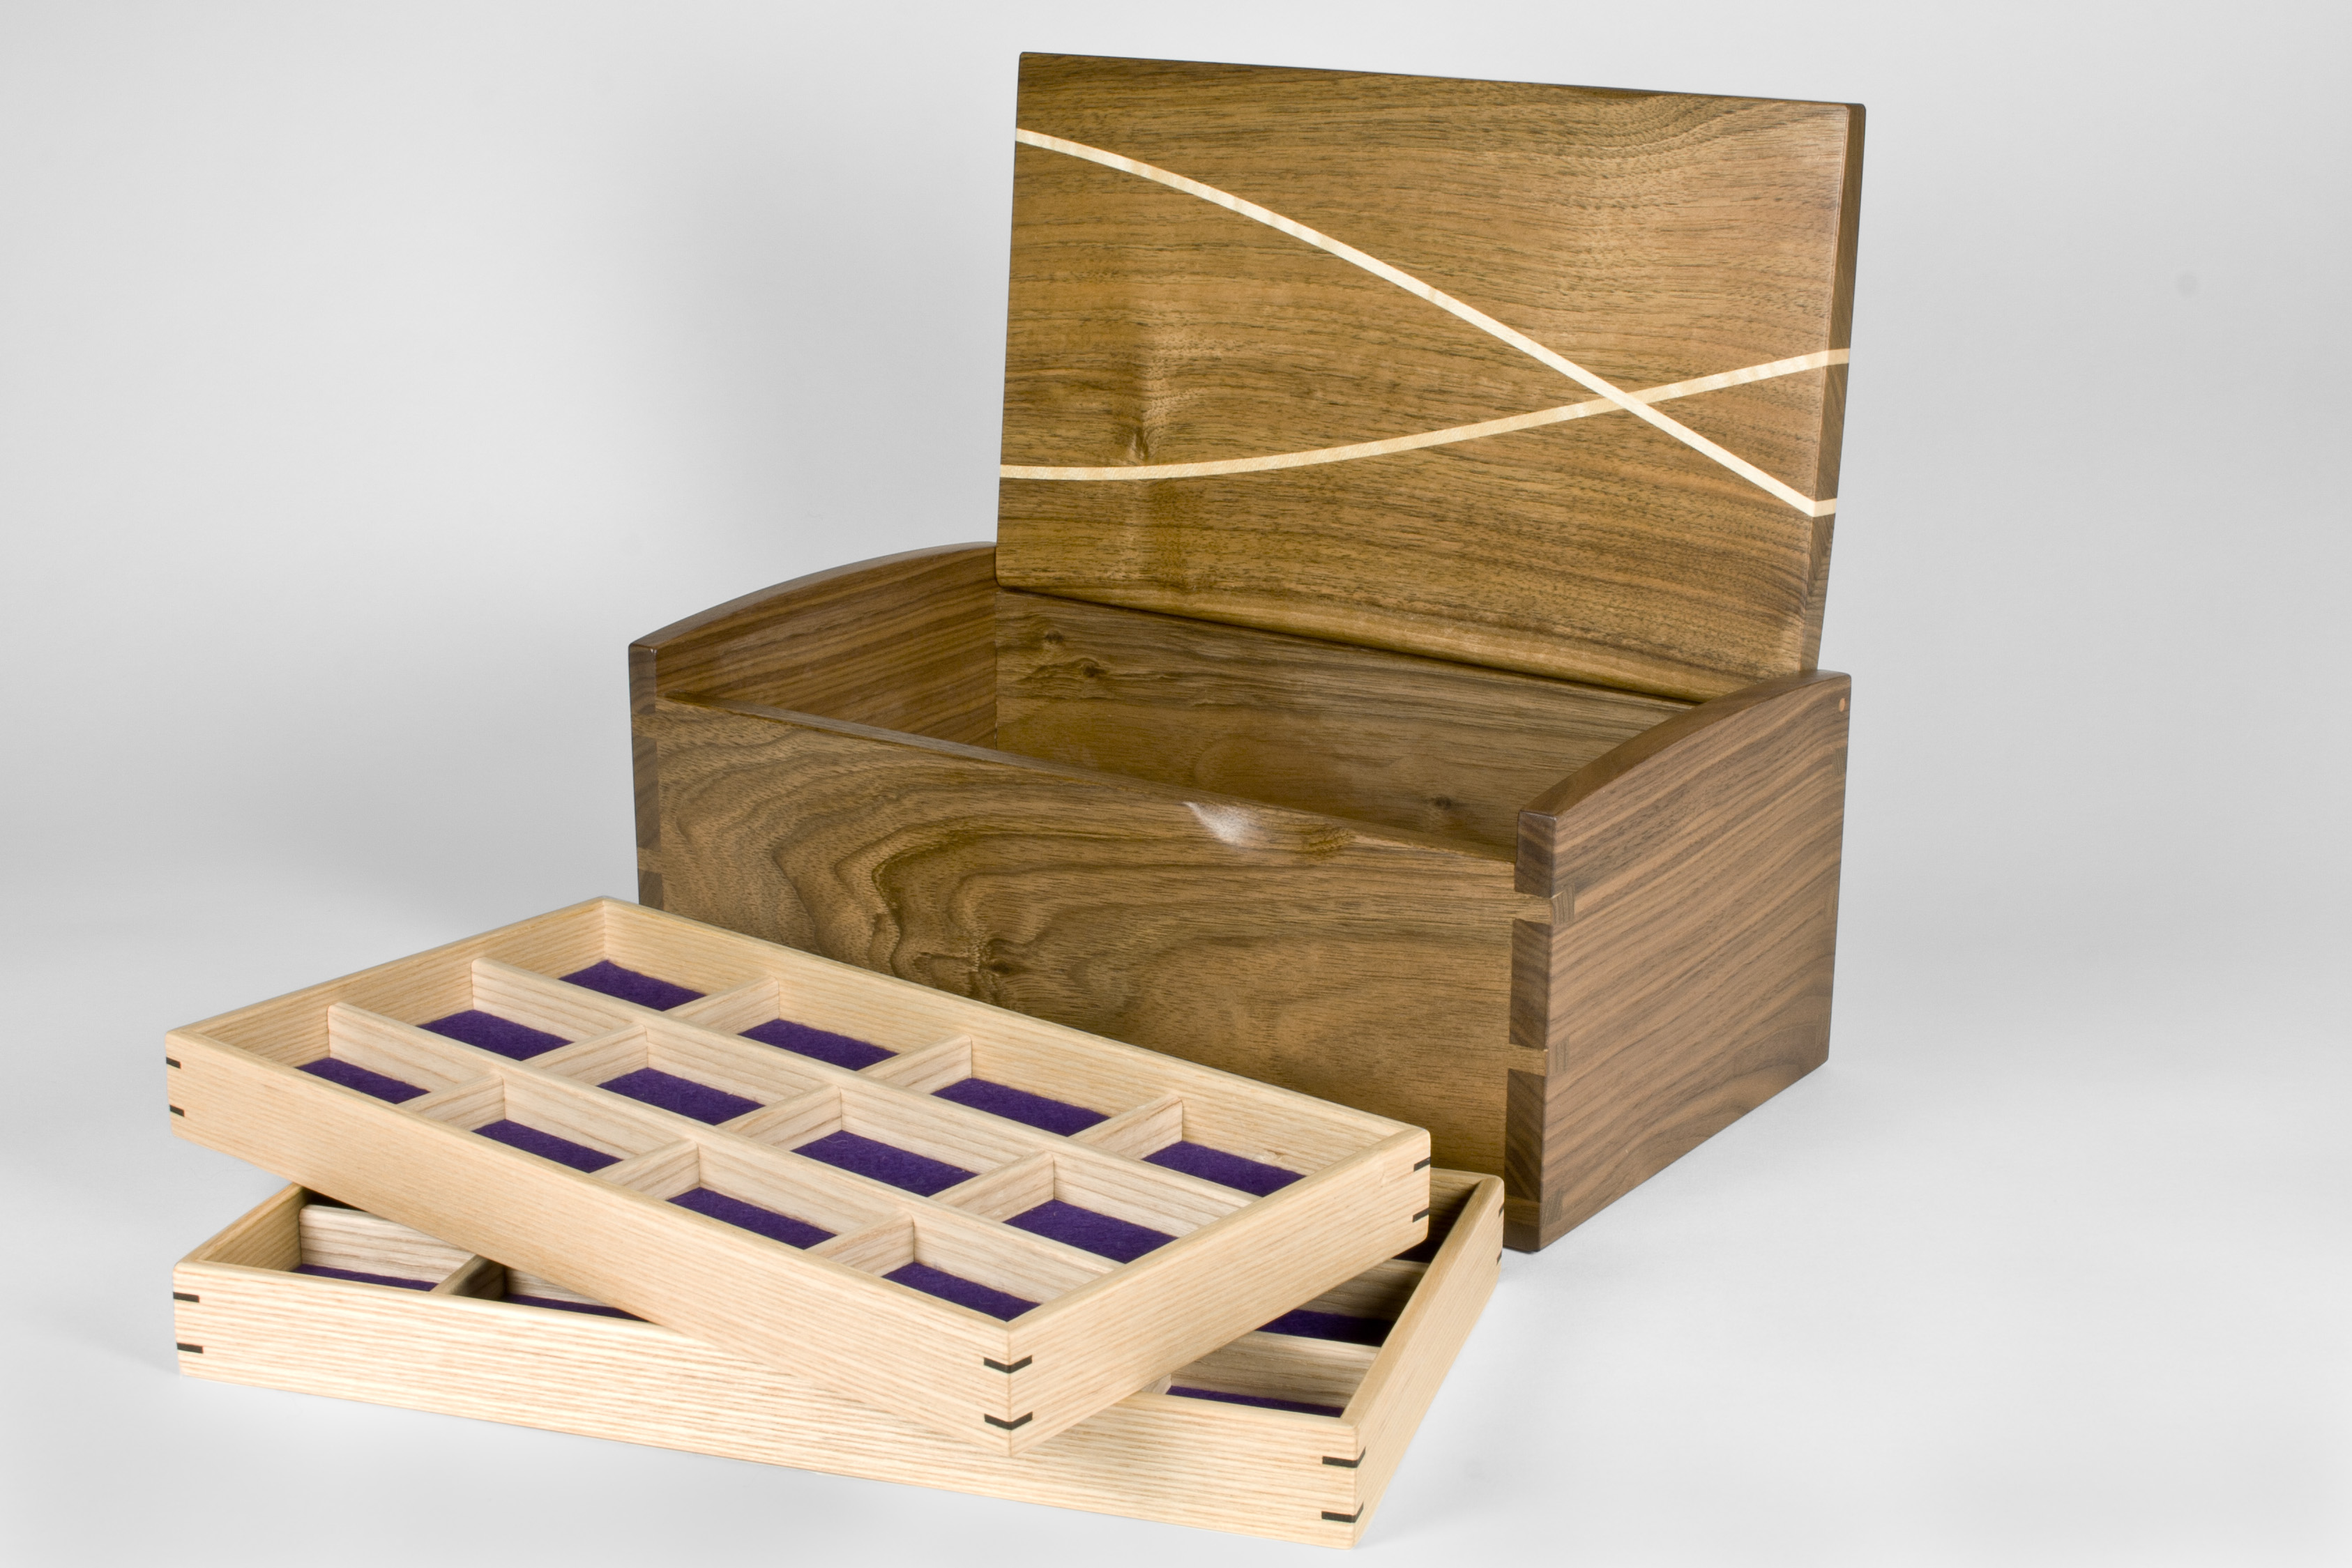 The box has two jewellery trays